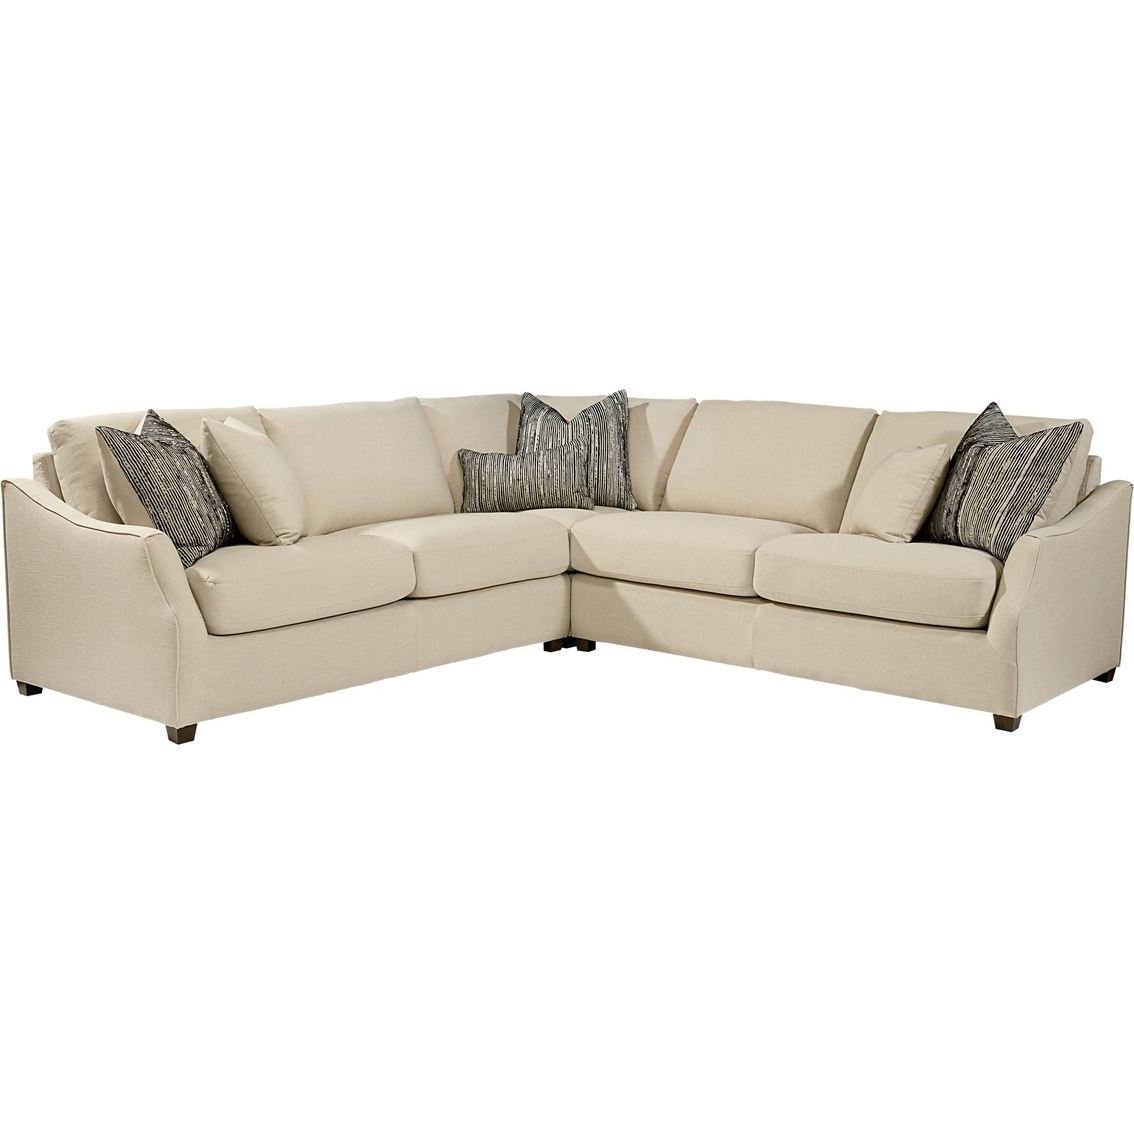 Sofas & Couches (View 6 of 20)